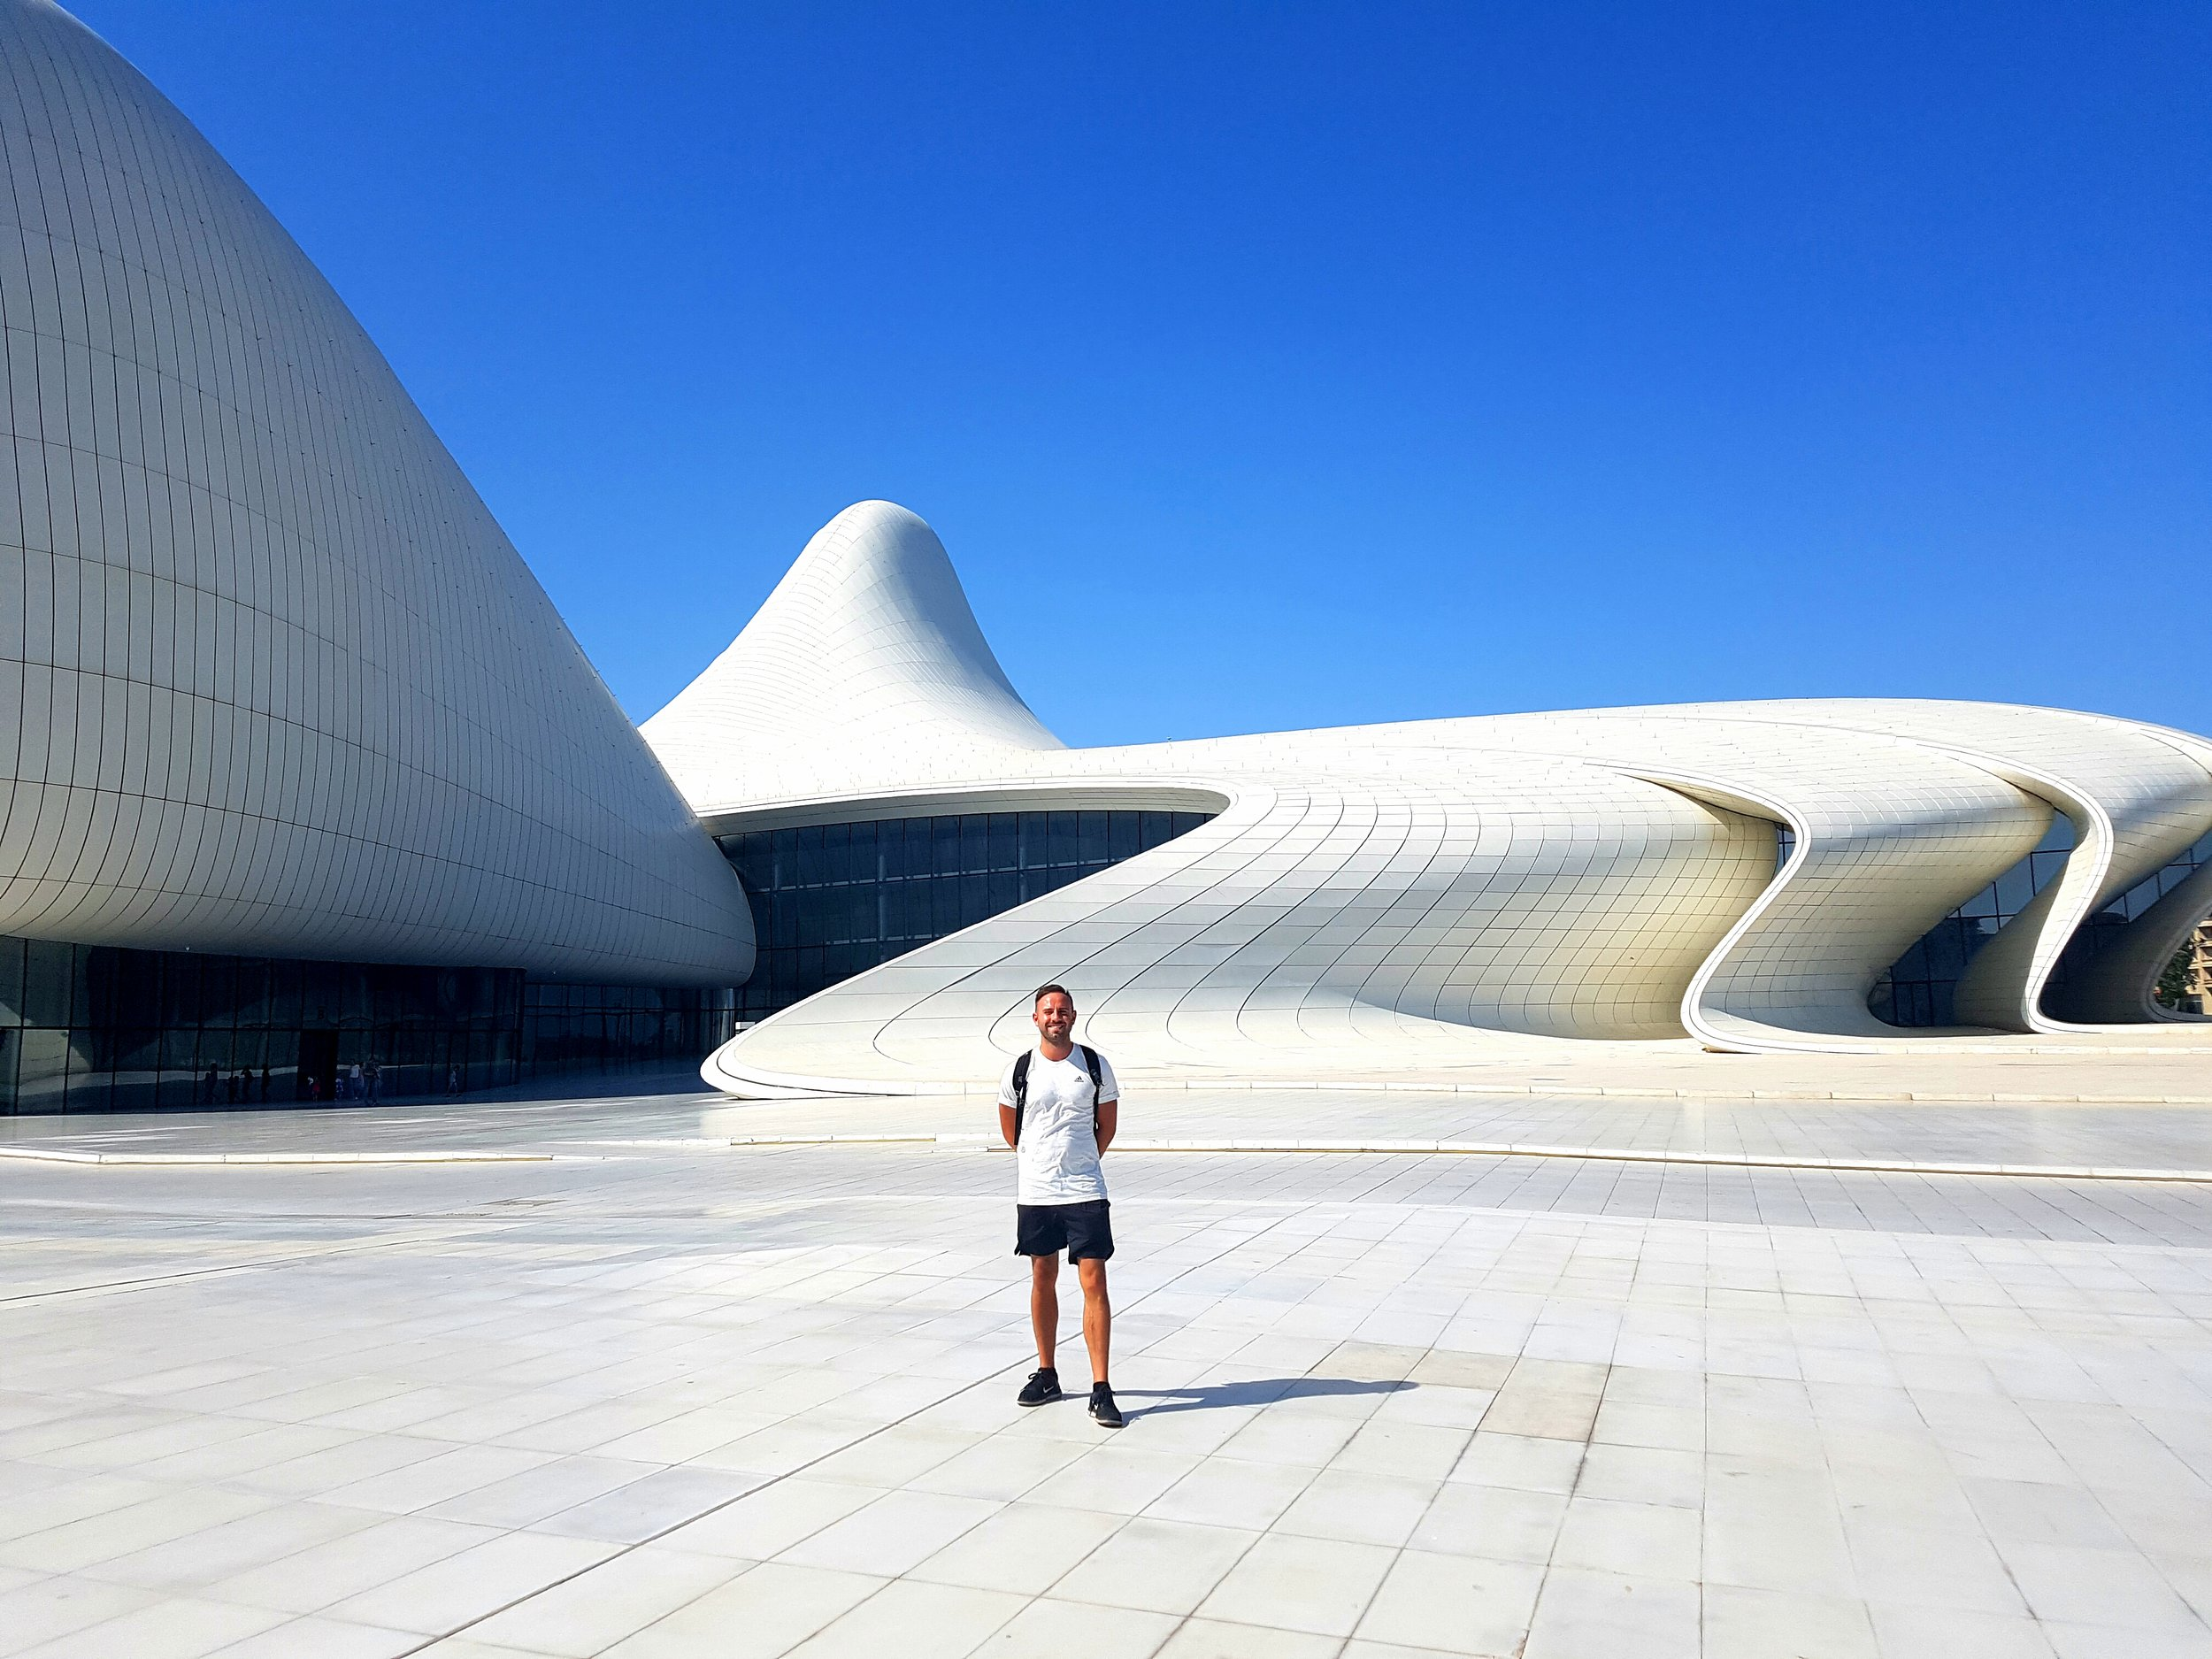 This is the best modern building in the world. My shorts are shorter than I thought.